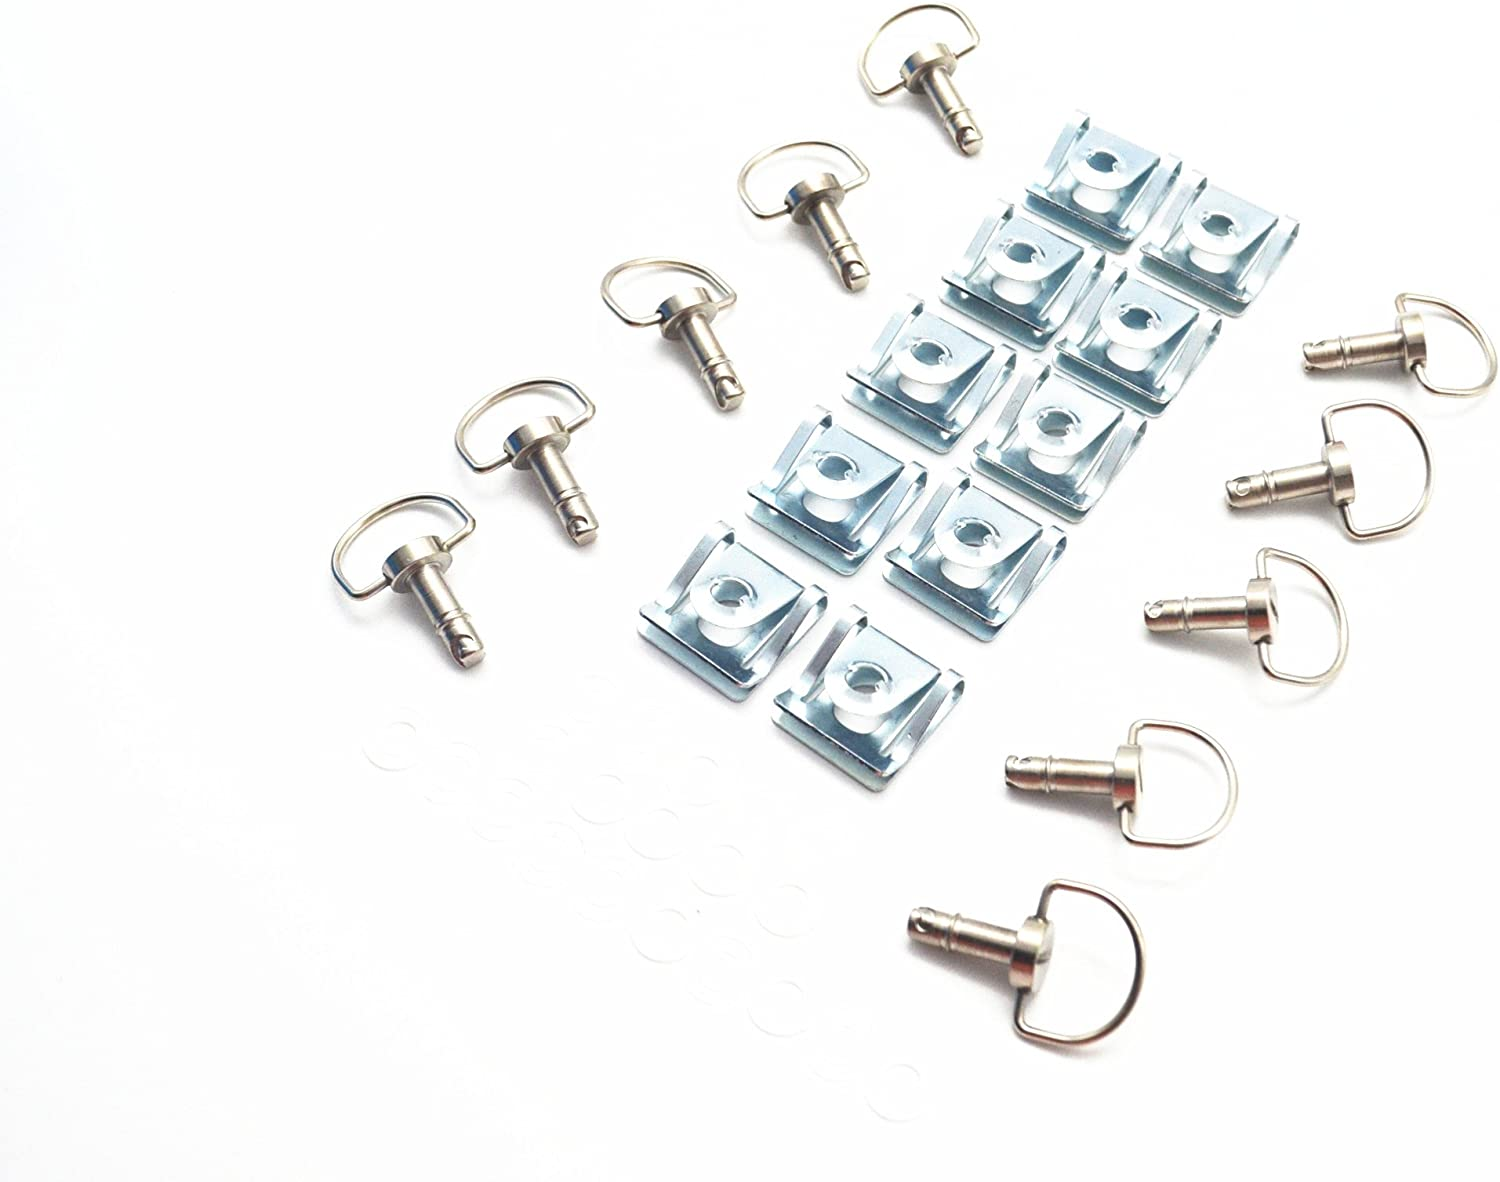 10 Pack MOTO4U Motorcycle Quick Release Race Fasteners 1//4 Turn 17mm D-Ring Length in gold